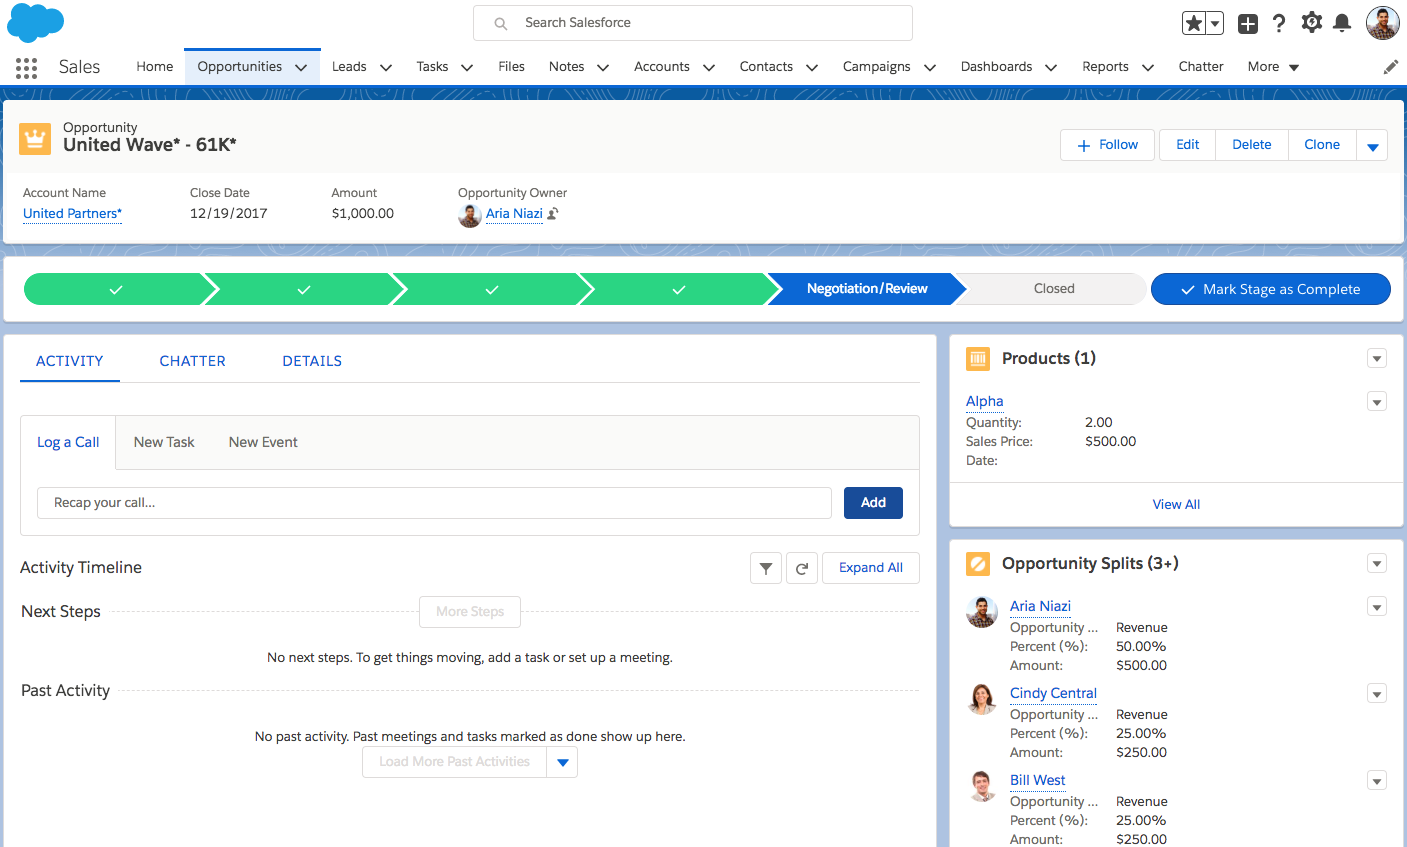 An opportunity record in Salesforce with the Opportunity Splits component shown. There are three salespeople shown on the Opportunity Splits component who are splitting the opportunity revenue.